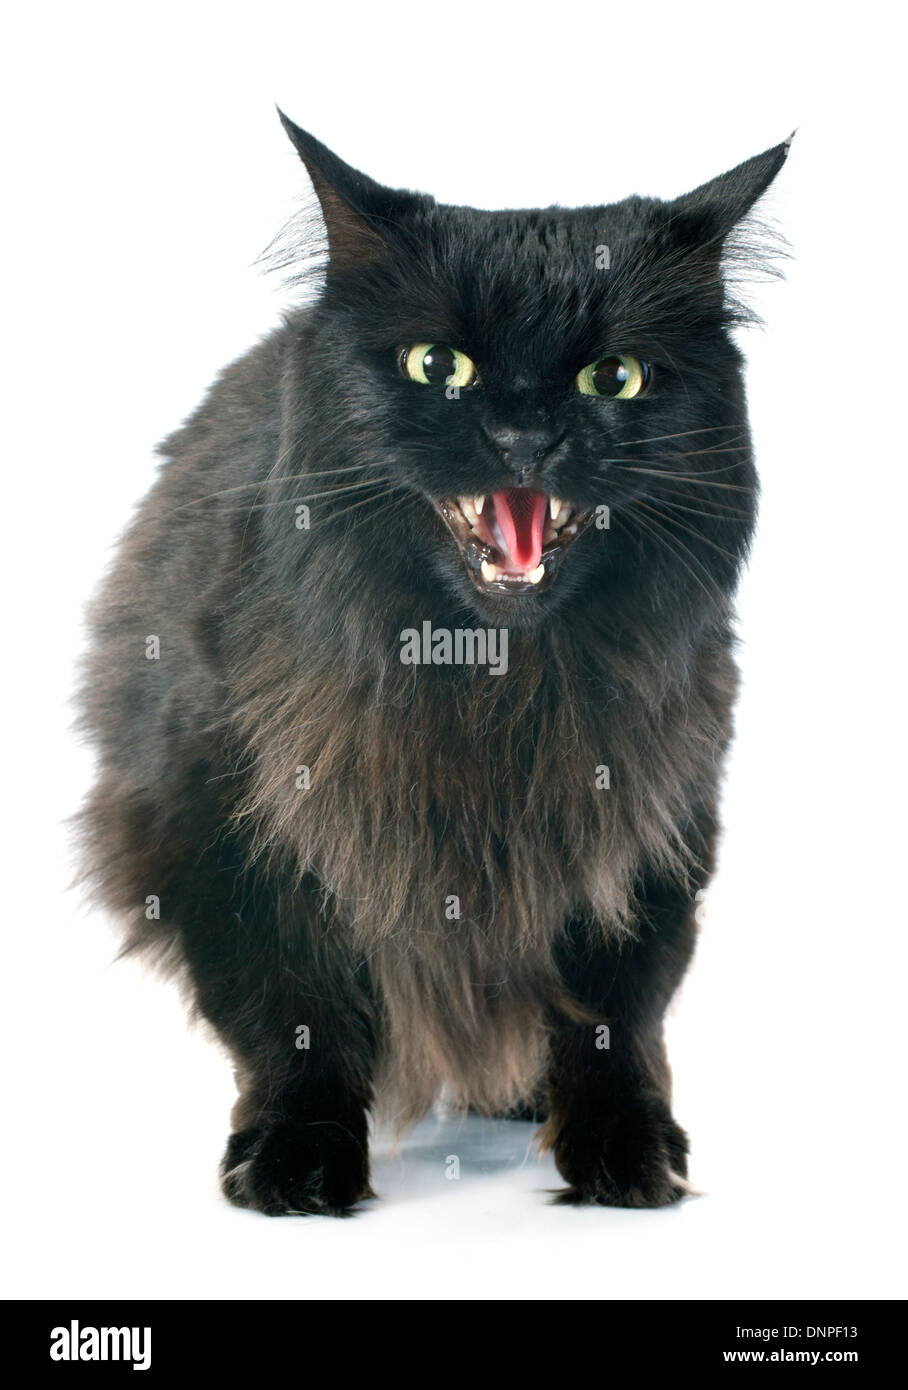 black cat angry in front of white background - Stock Image